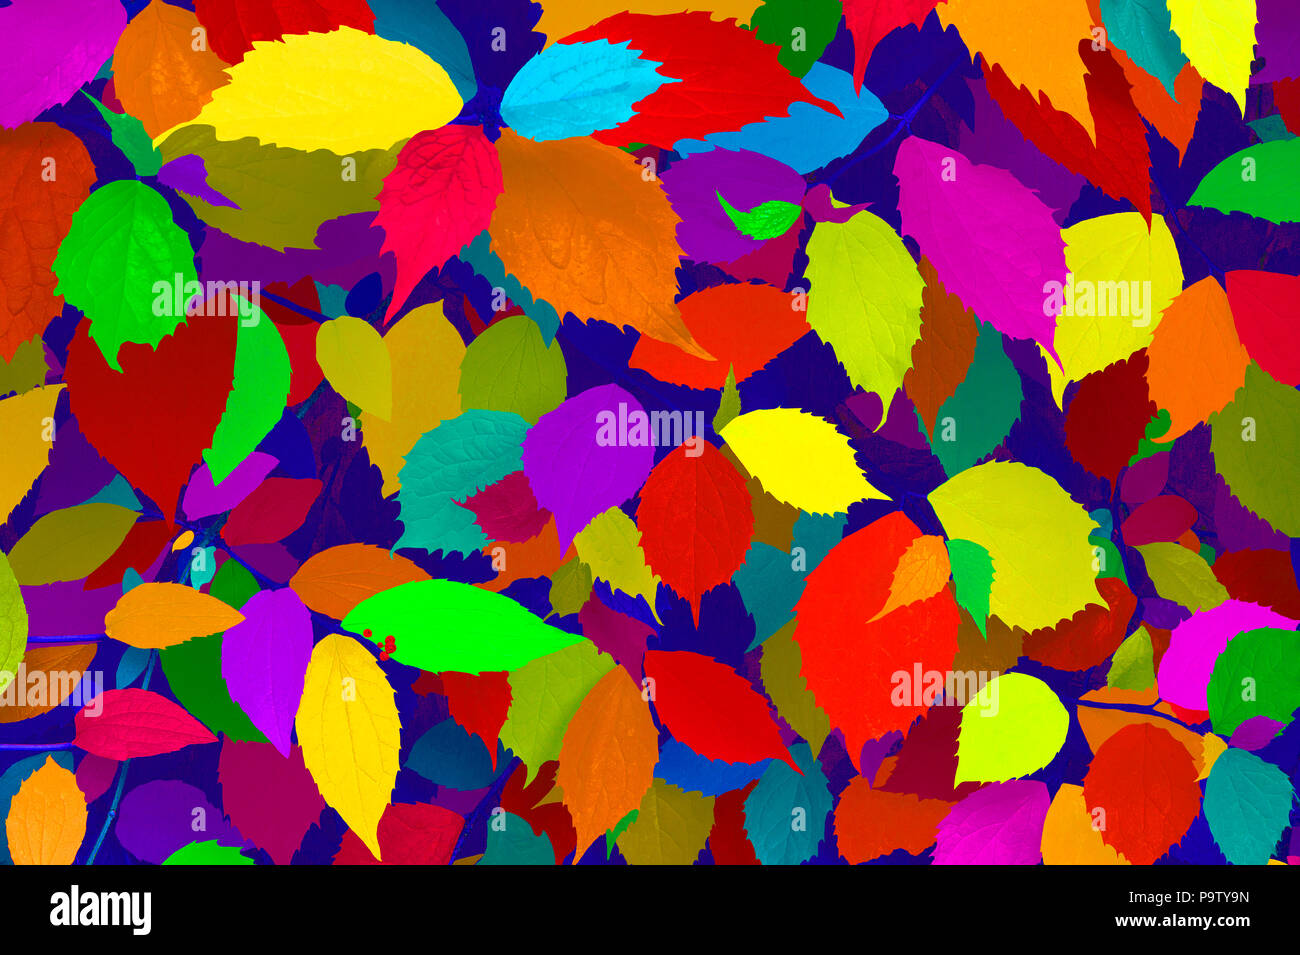 COLOURFUL HAPPY LEAVES - Stock Image